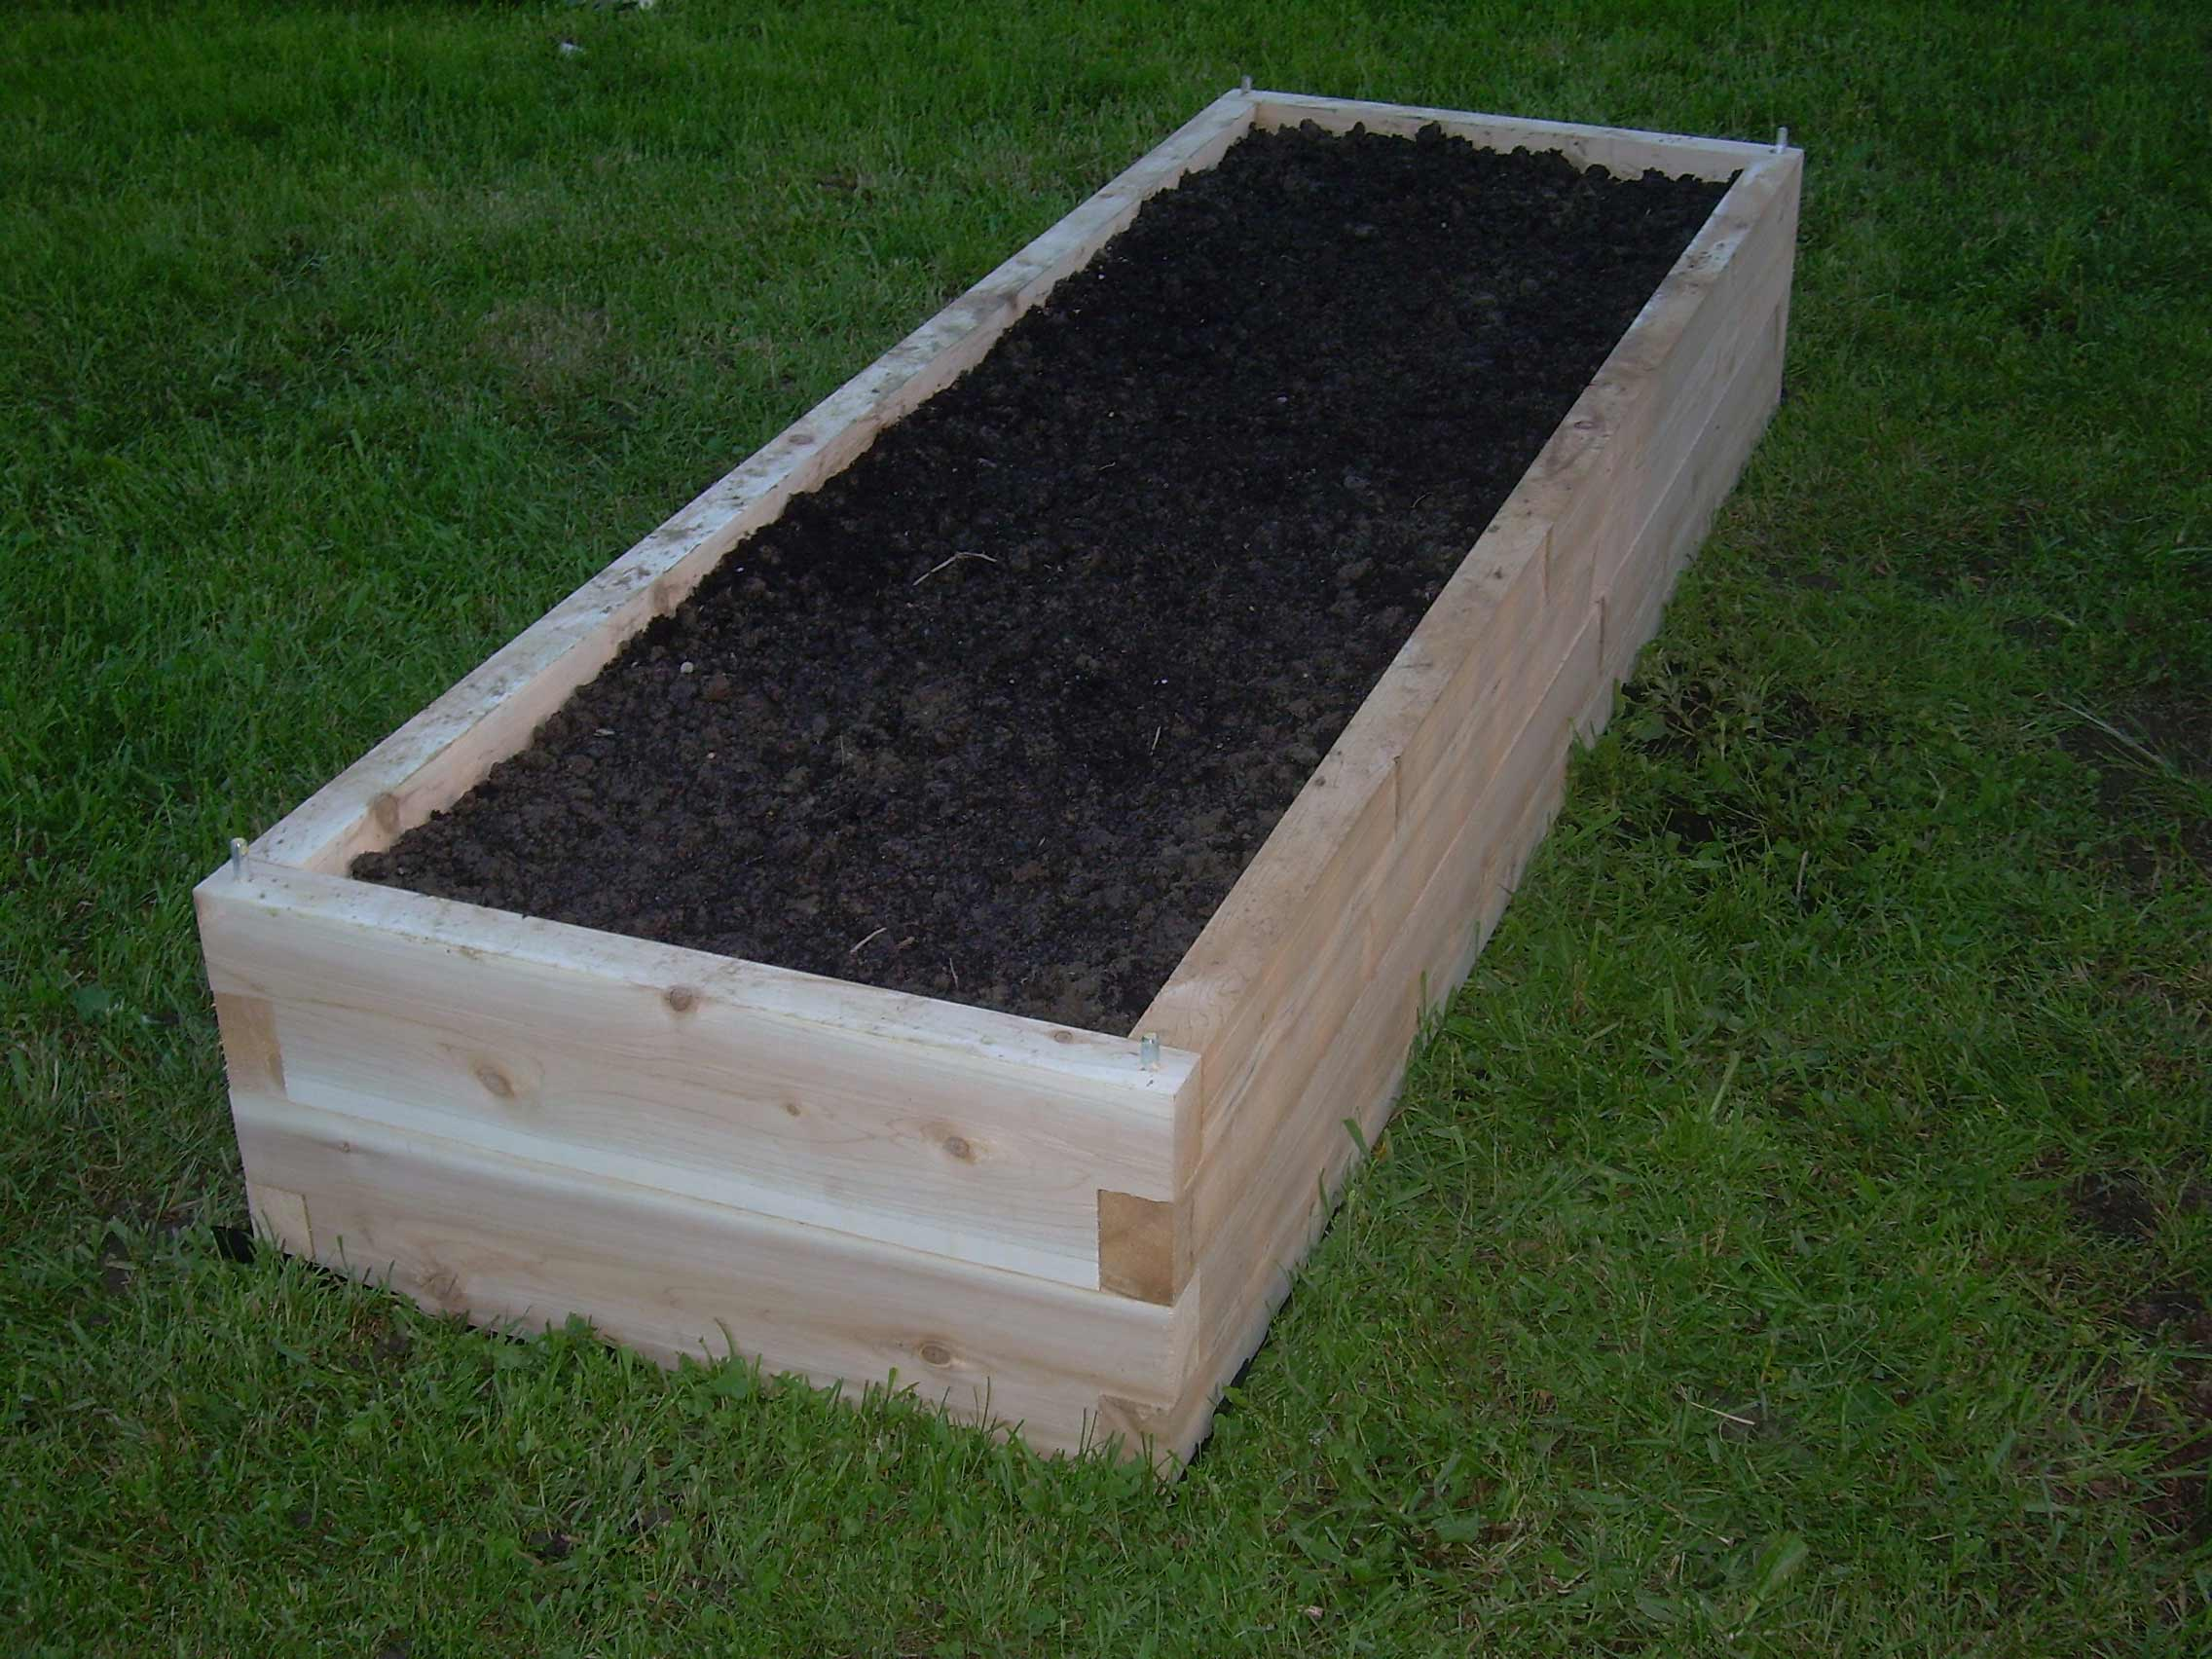 raised bed garden kits home depot terrasse en bois. Black Bedroom Furniture Sets. Home Design Ideas